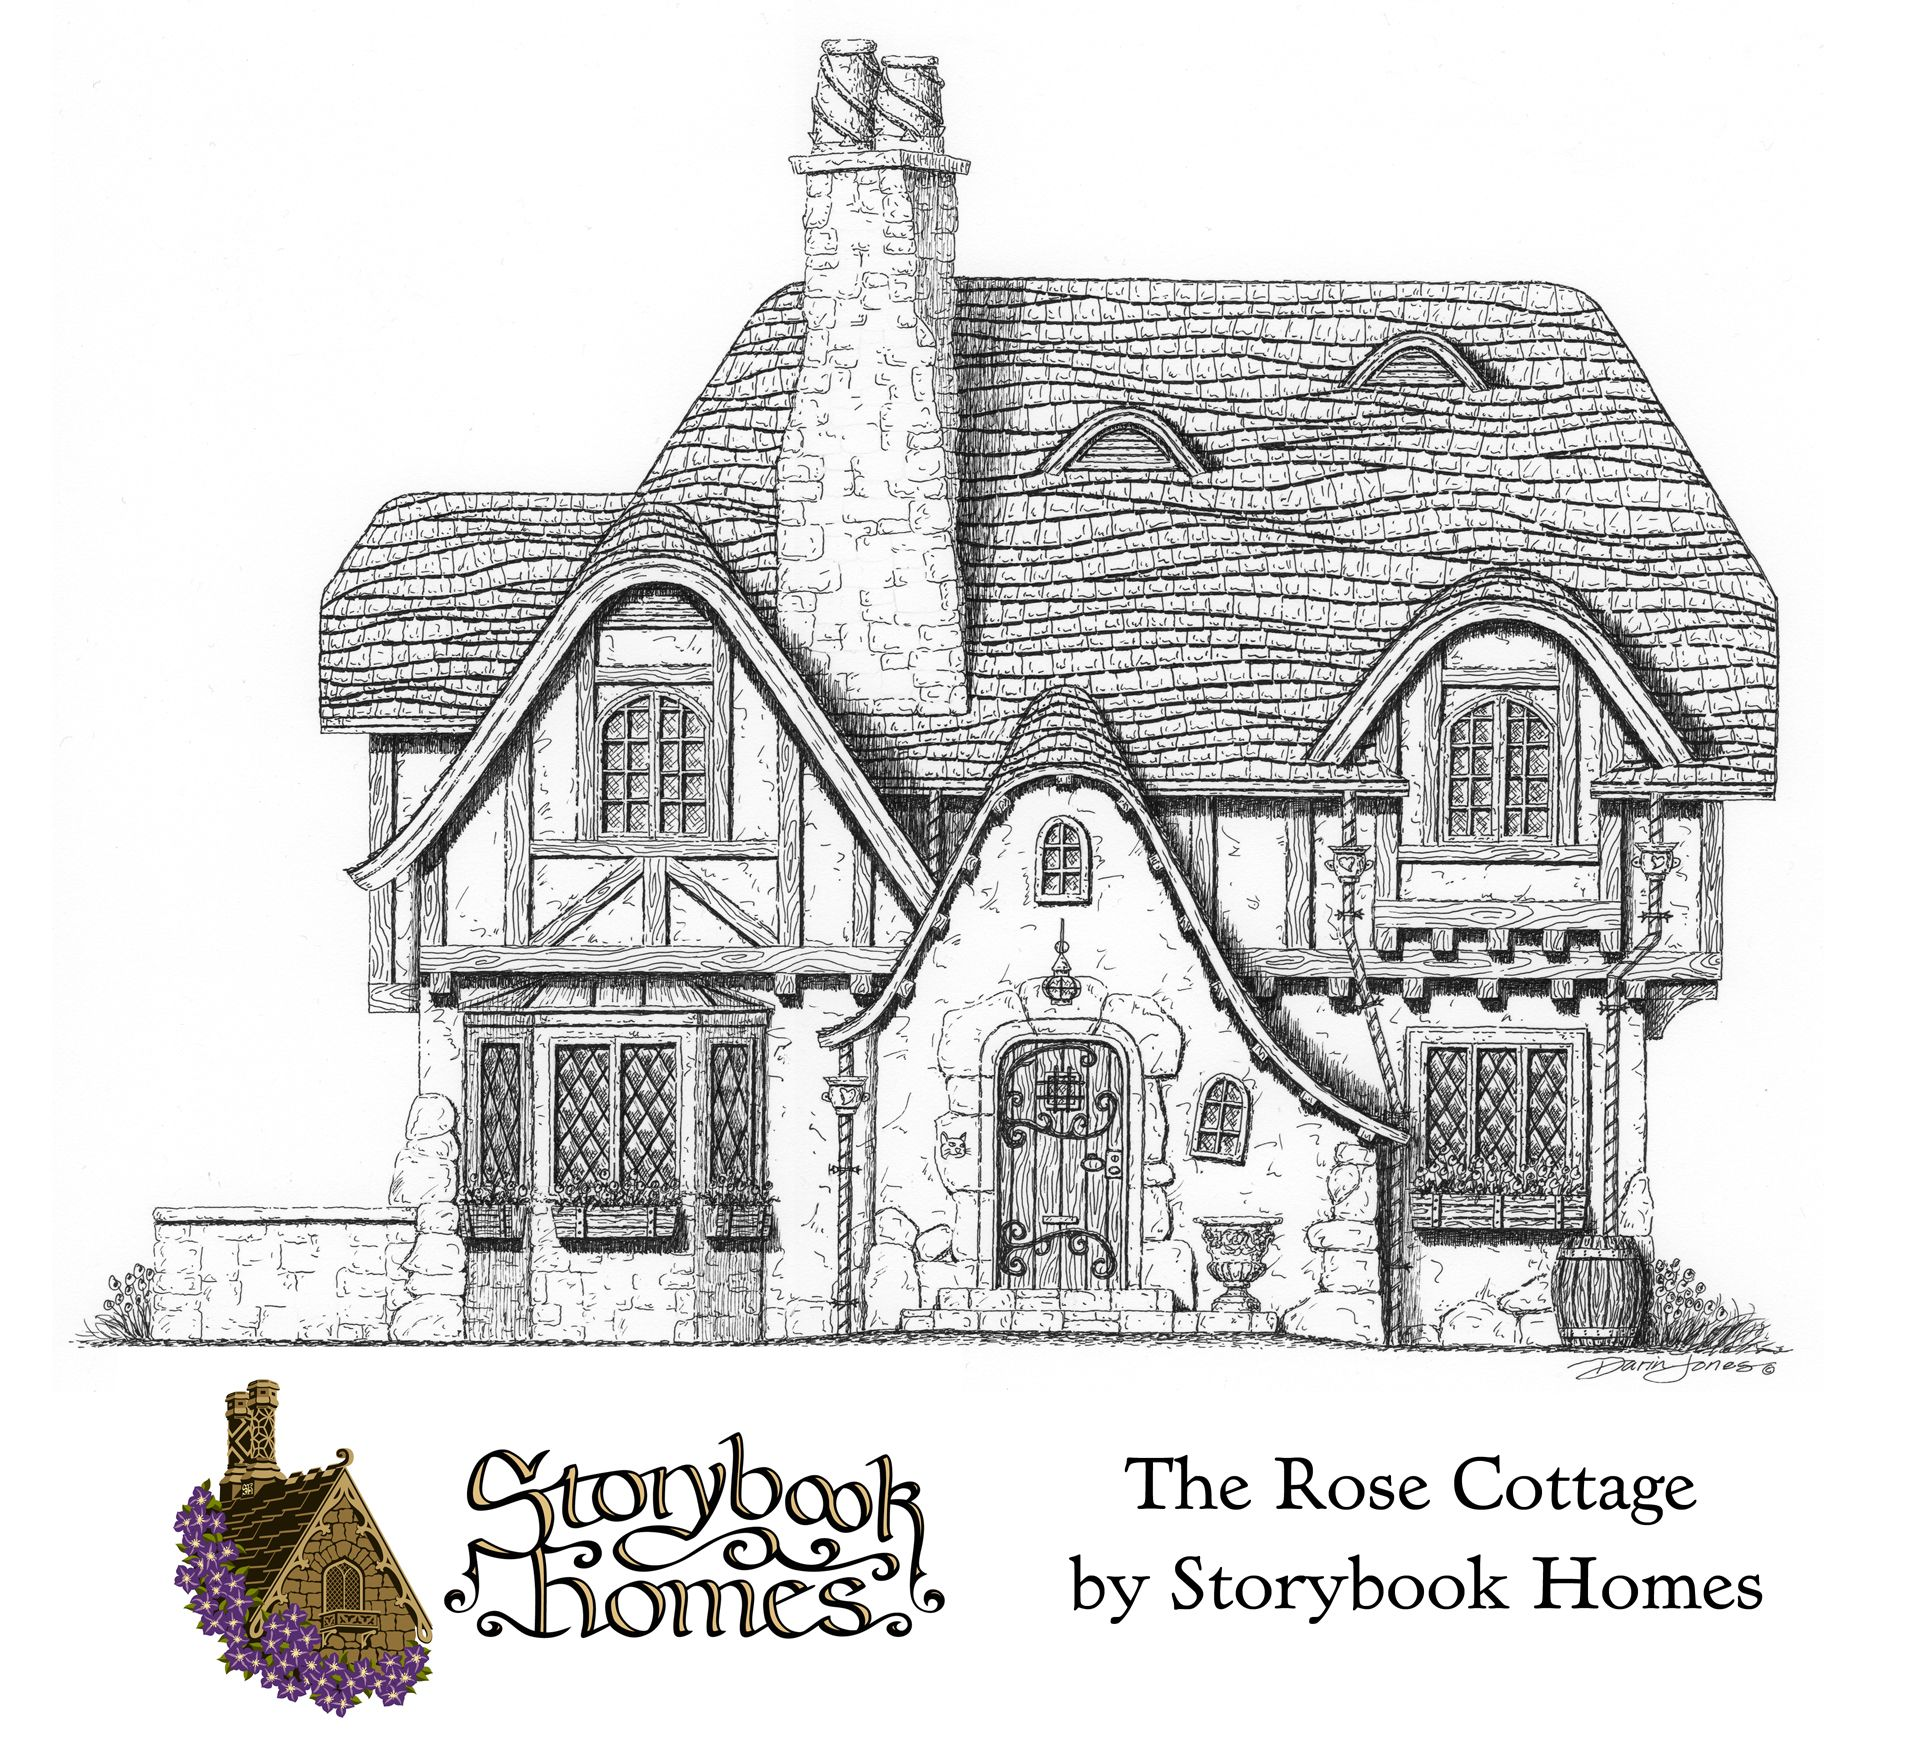 Pin By Storybook Homes On Storybook Homes Storybook Homes Storybook Cottage Fairytale Cottage